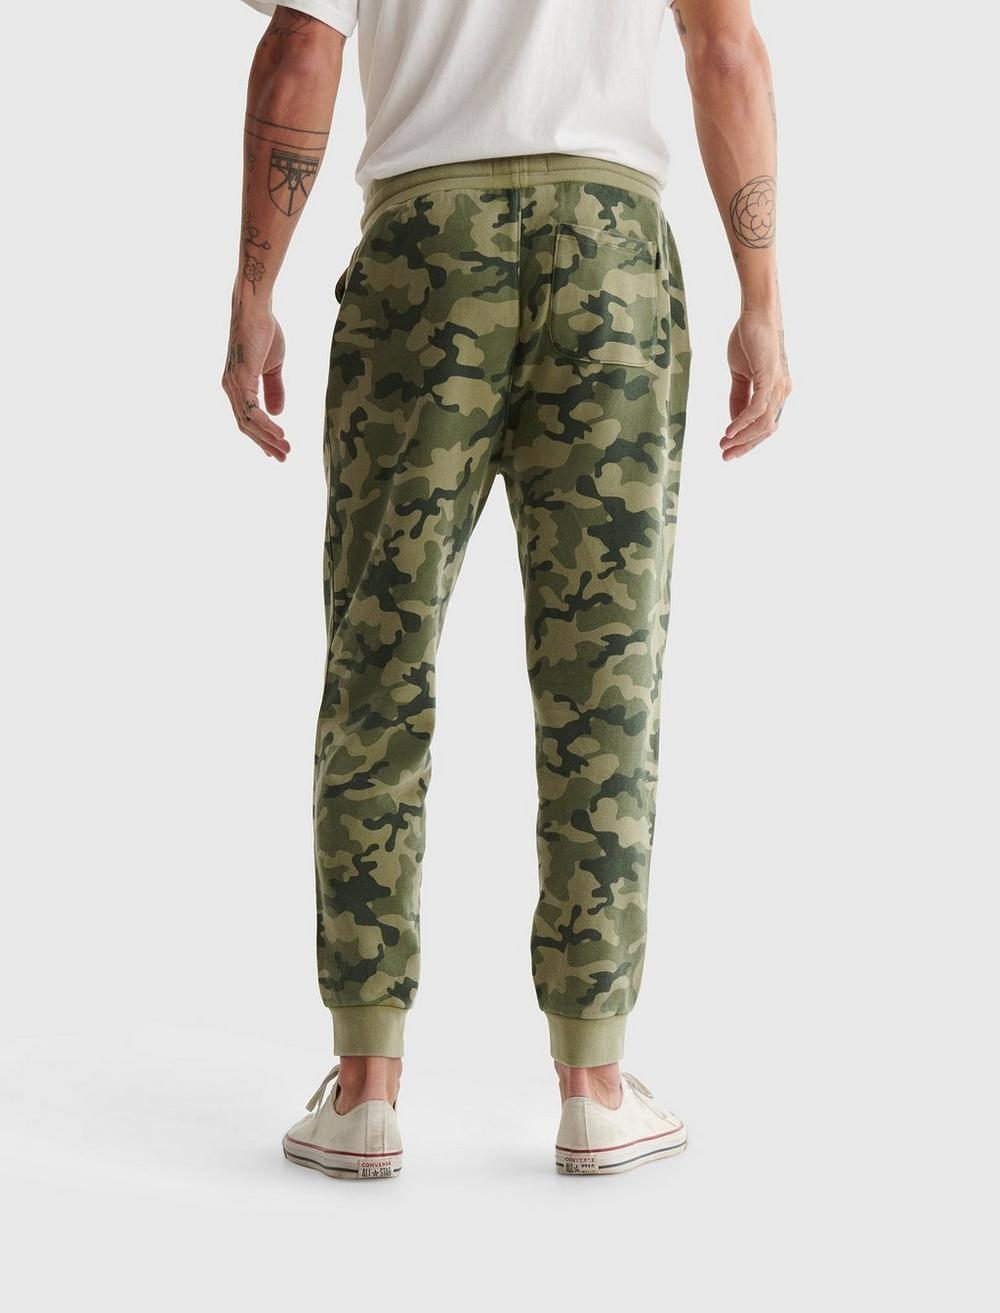 SUEDED TERRY CAMO JOGGER, image 4